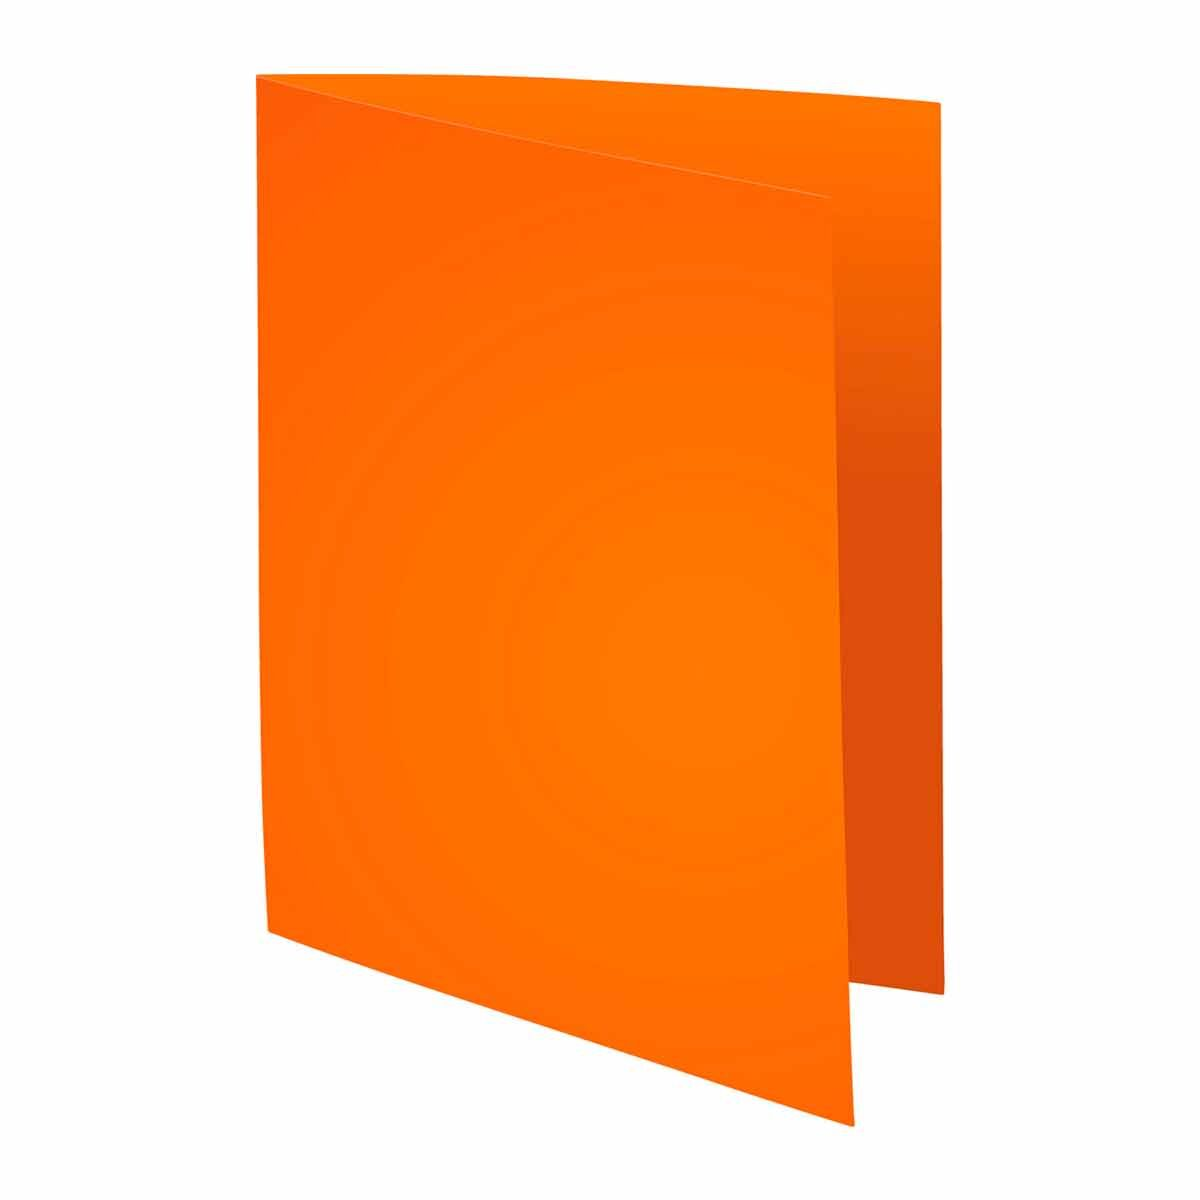 Exacompta Forever Square Cut Folders A4 220gsm Pack of 500 Orange